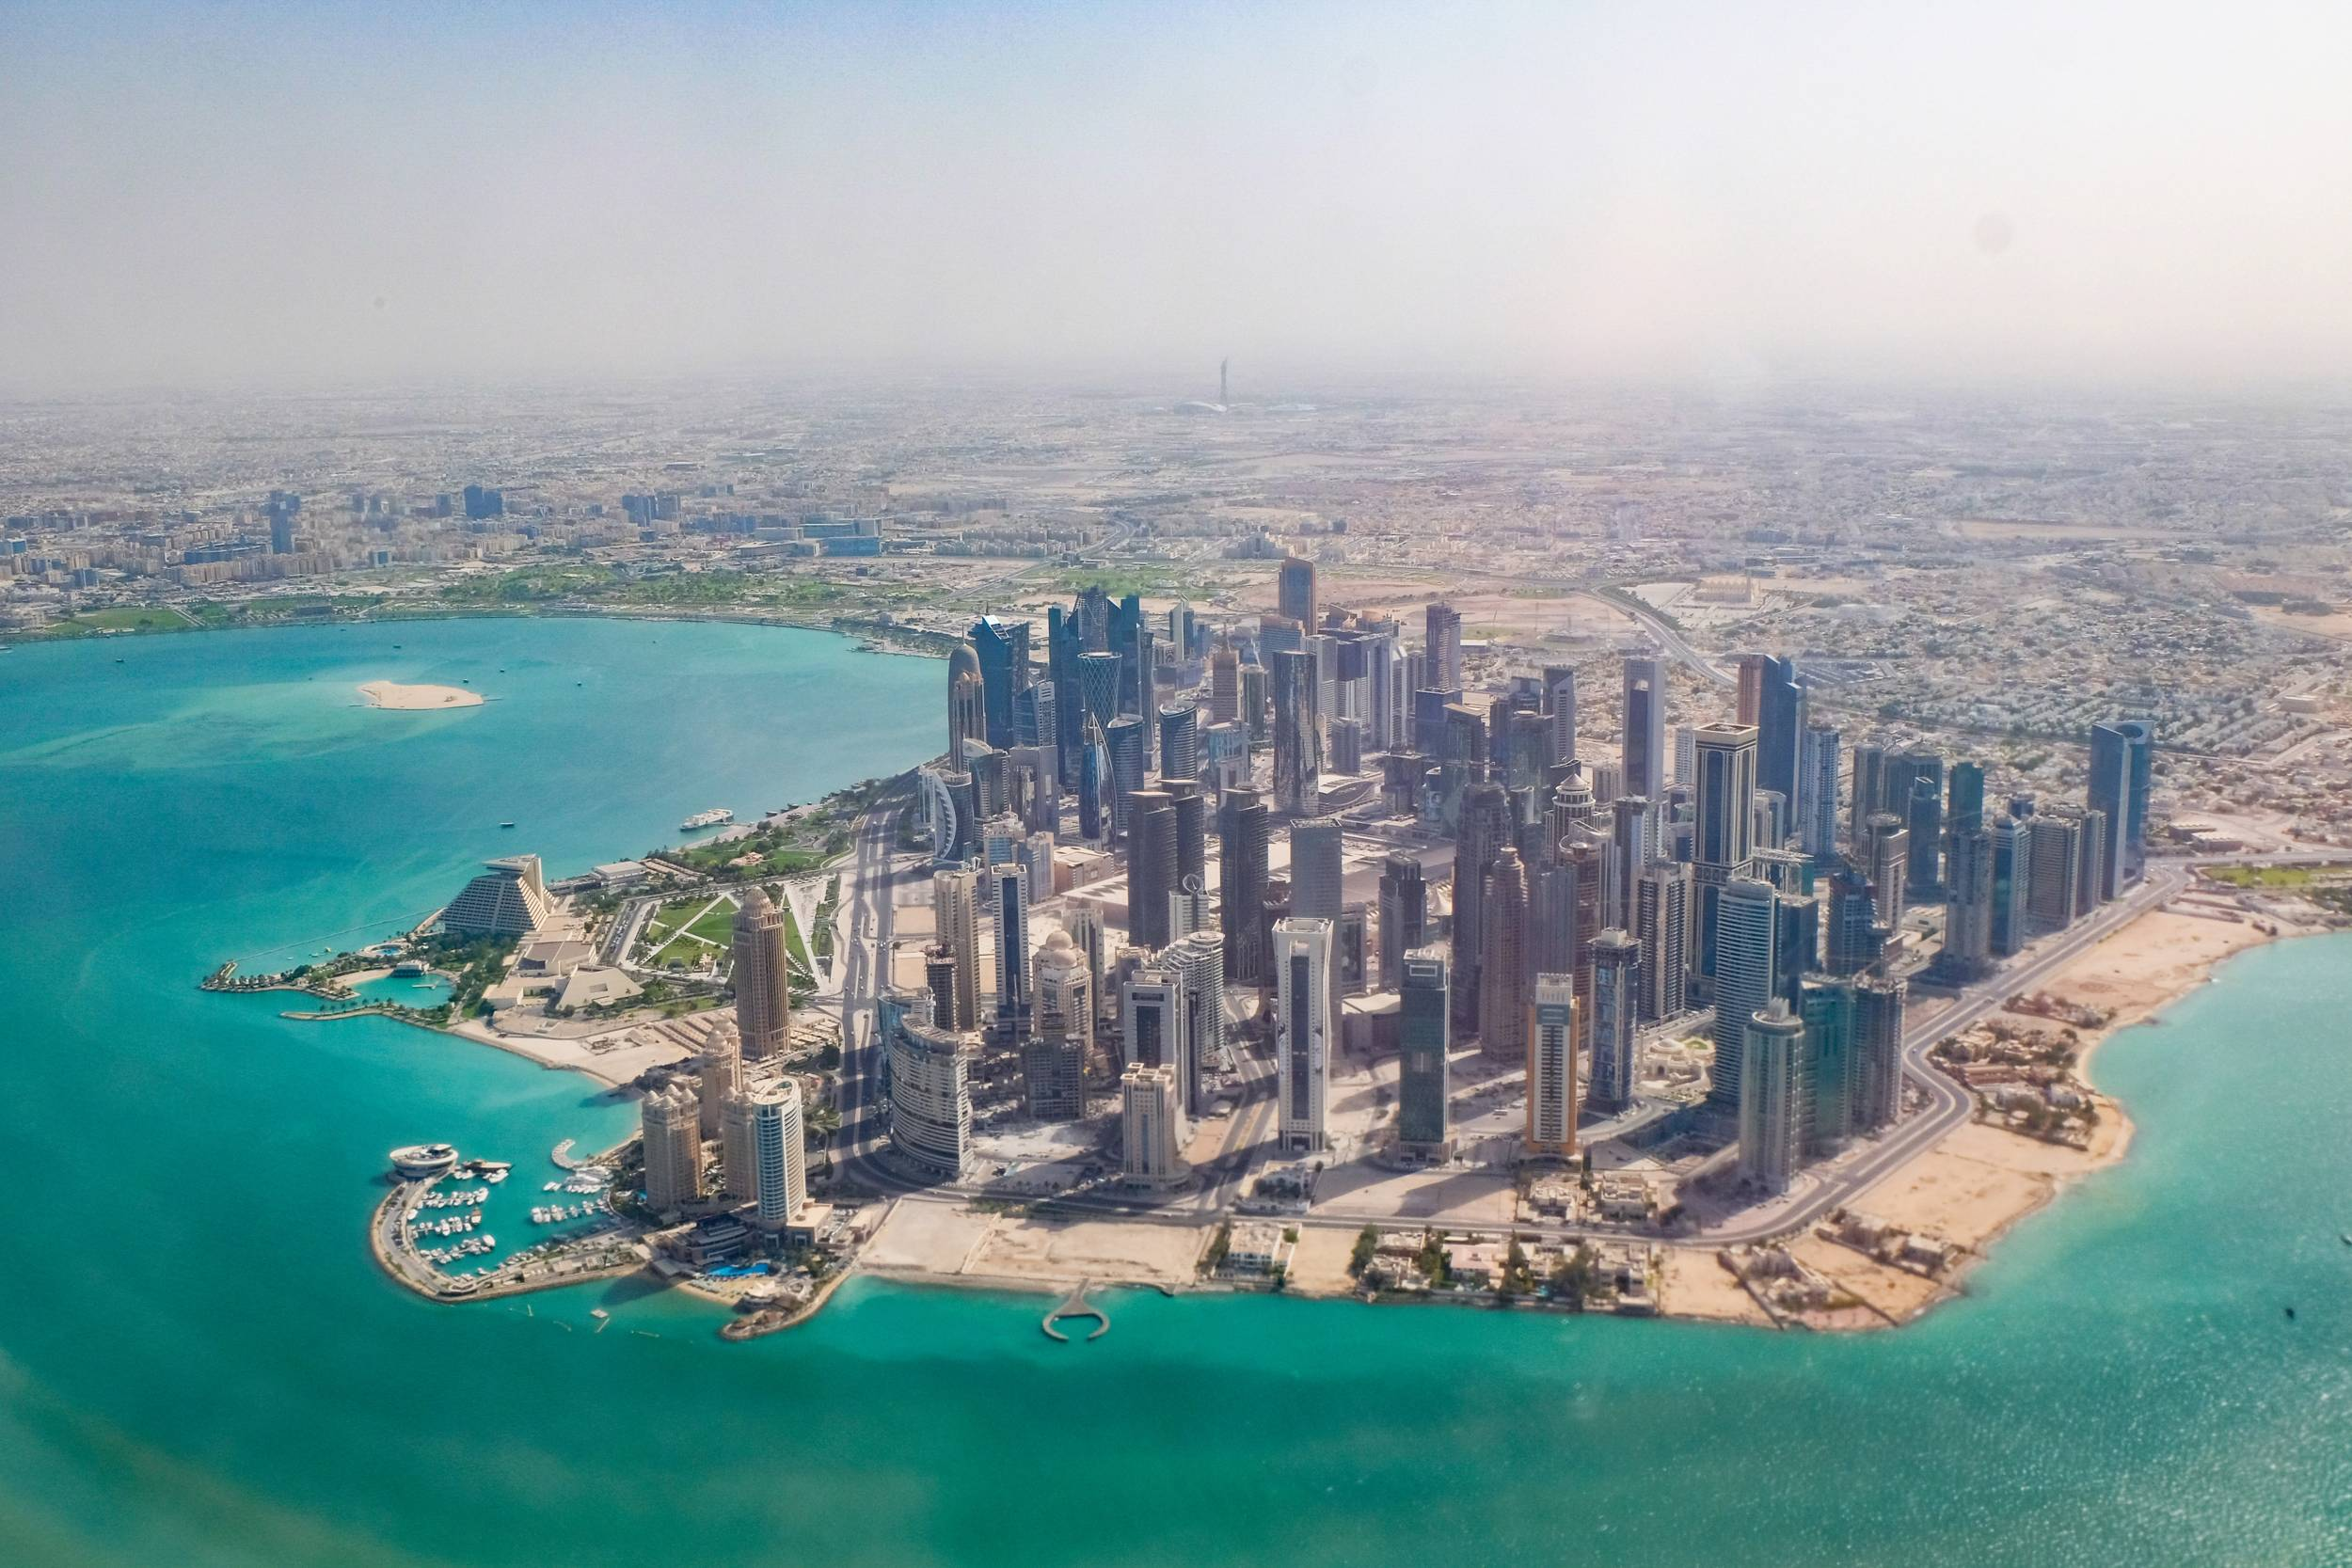 Best Places To visit in the Middle East l Best Places in the Middle East To Visit l Best Holiday Destinations Middle East l Best Middle East Destinations